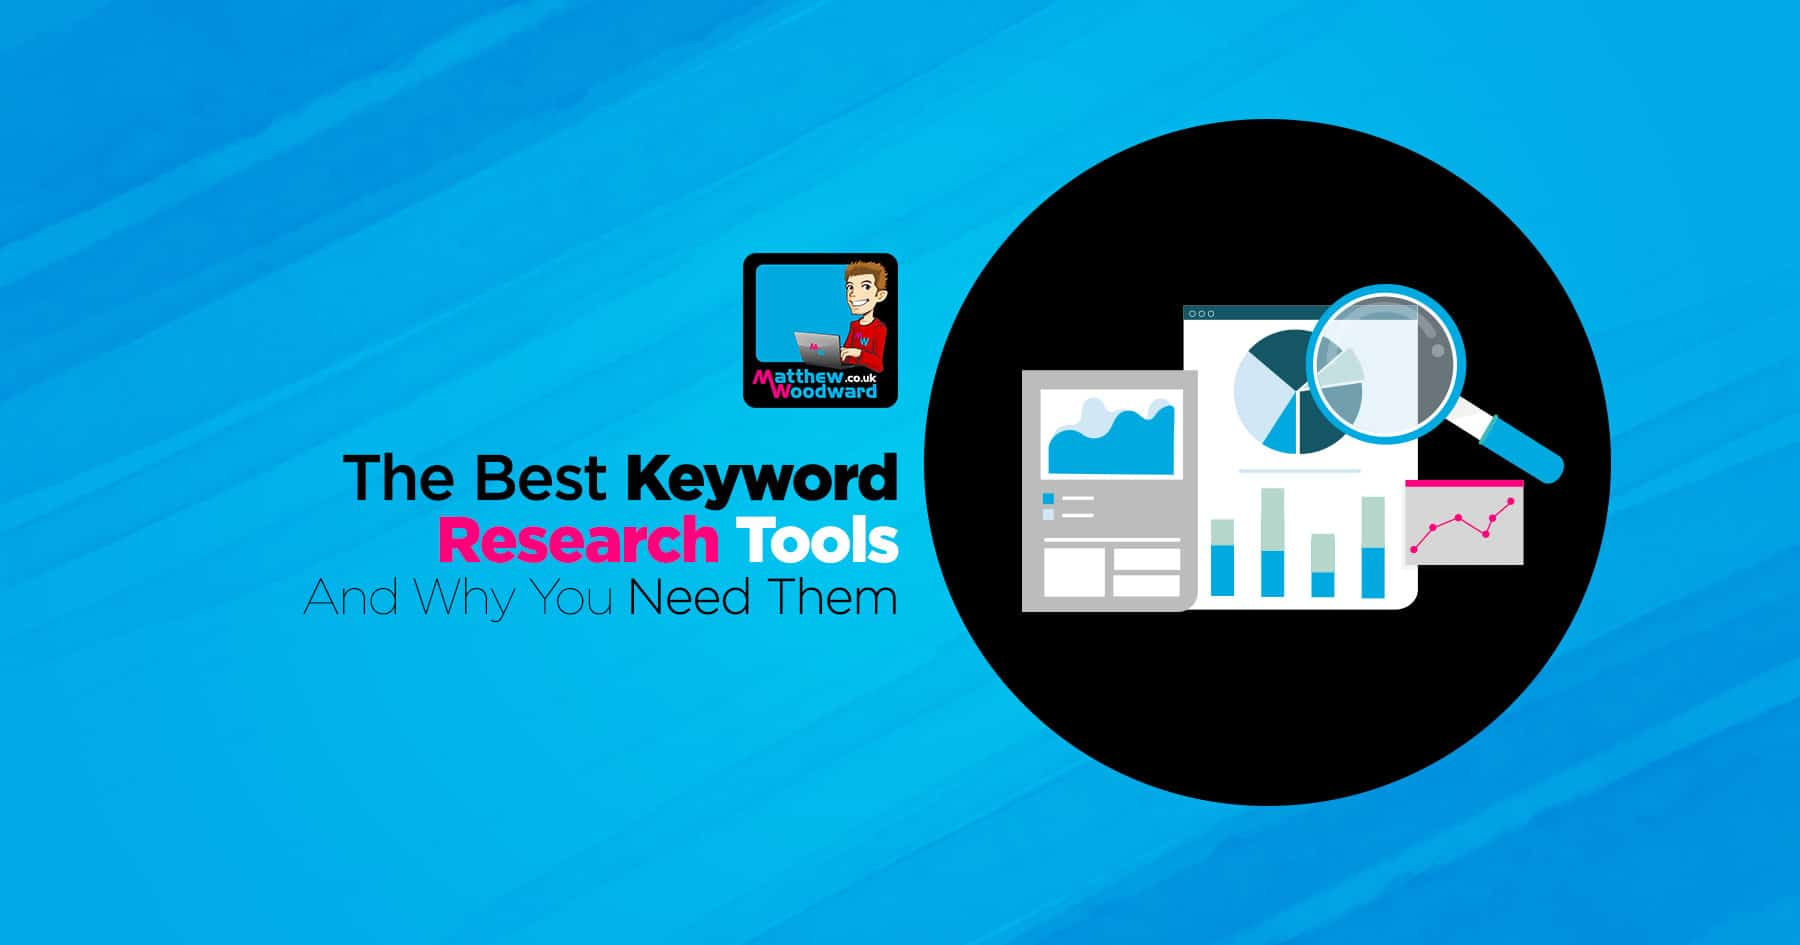 The Best Keyword Research Tools (And How To Use Them)